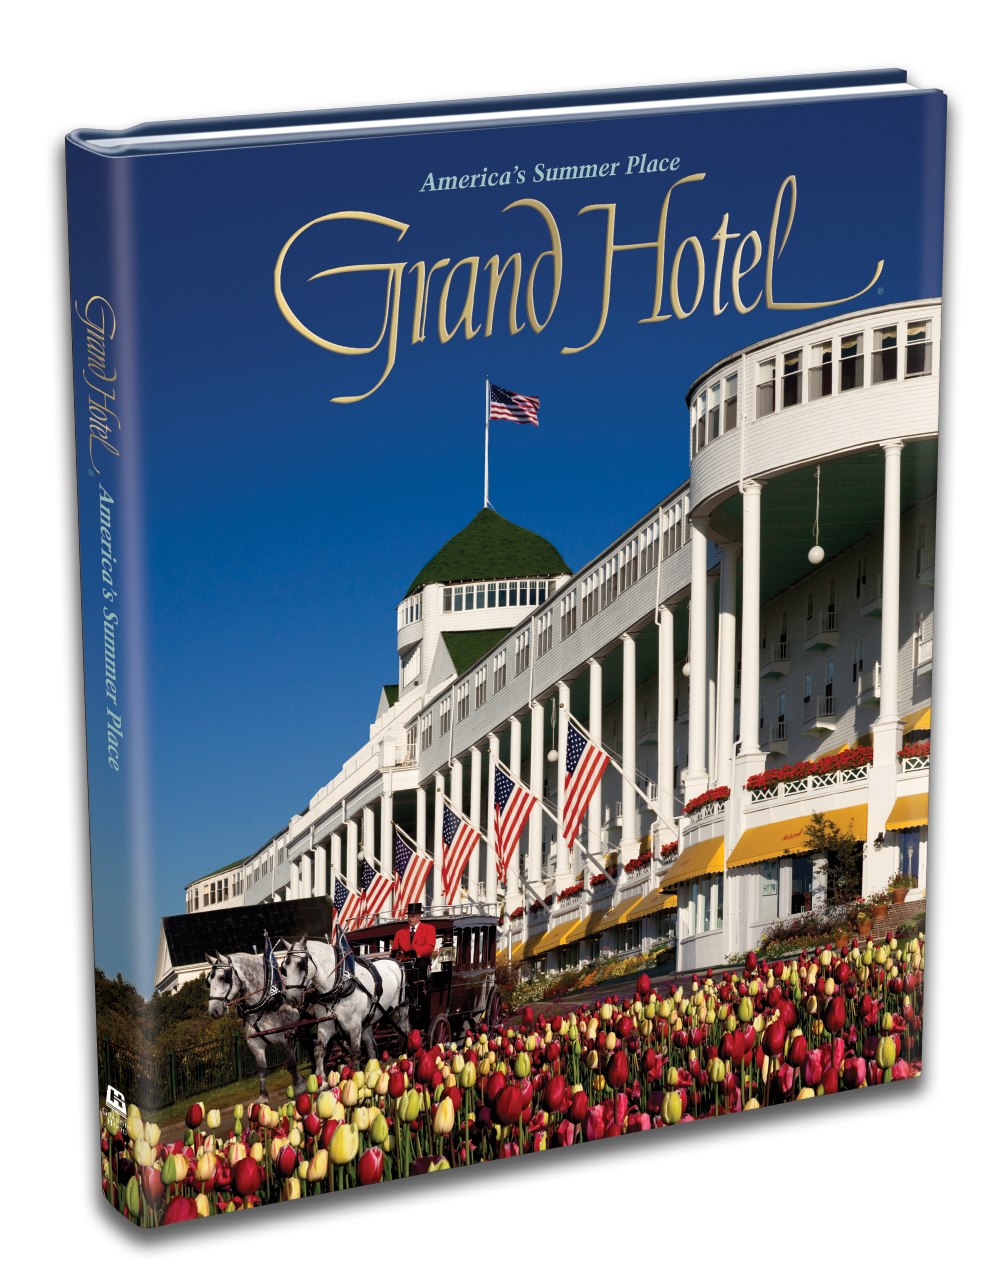 "Exceeding the Investment - Grand Hotel at Mackinac Island, Michigan celebrated its 125th Anniversary in 2012 by commissioning Grandin Hood to publish a commemorative coffee table book to mark the milestone event. It continues to be among the most popular mementos the Hotel sells today.From the initial order of 10,000 books, 1,000 were designated to be enhanced as ""Special Edition"" copies, signed by the Grand Hotel's longtime and venerated owner. The signed books were offered as part of the 125th Anniversary package, which filled quickly.Additionally, during that first and the following six-month season, enough copies were sold to exceed their full investment.  Over the course of six subsequent years, the book has enjoyed continued success as a VIP amenity gift and generated a handsome profit through brisk sales."